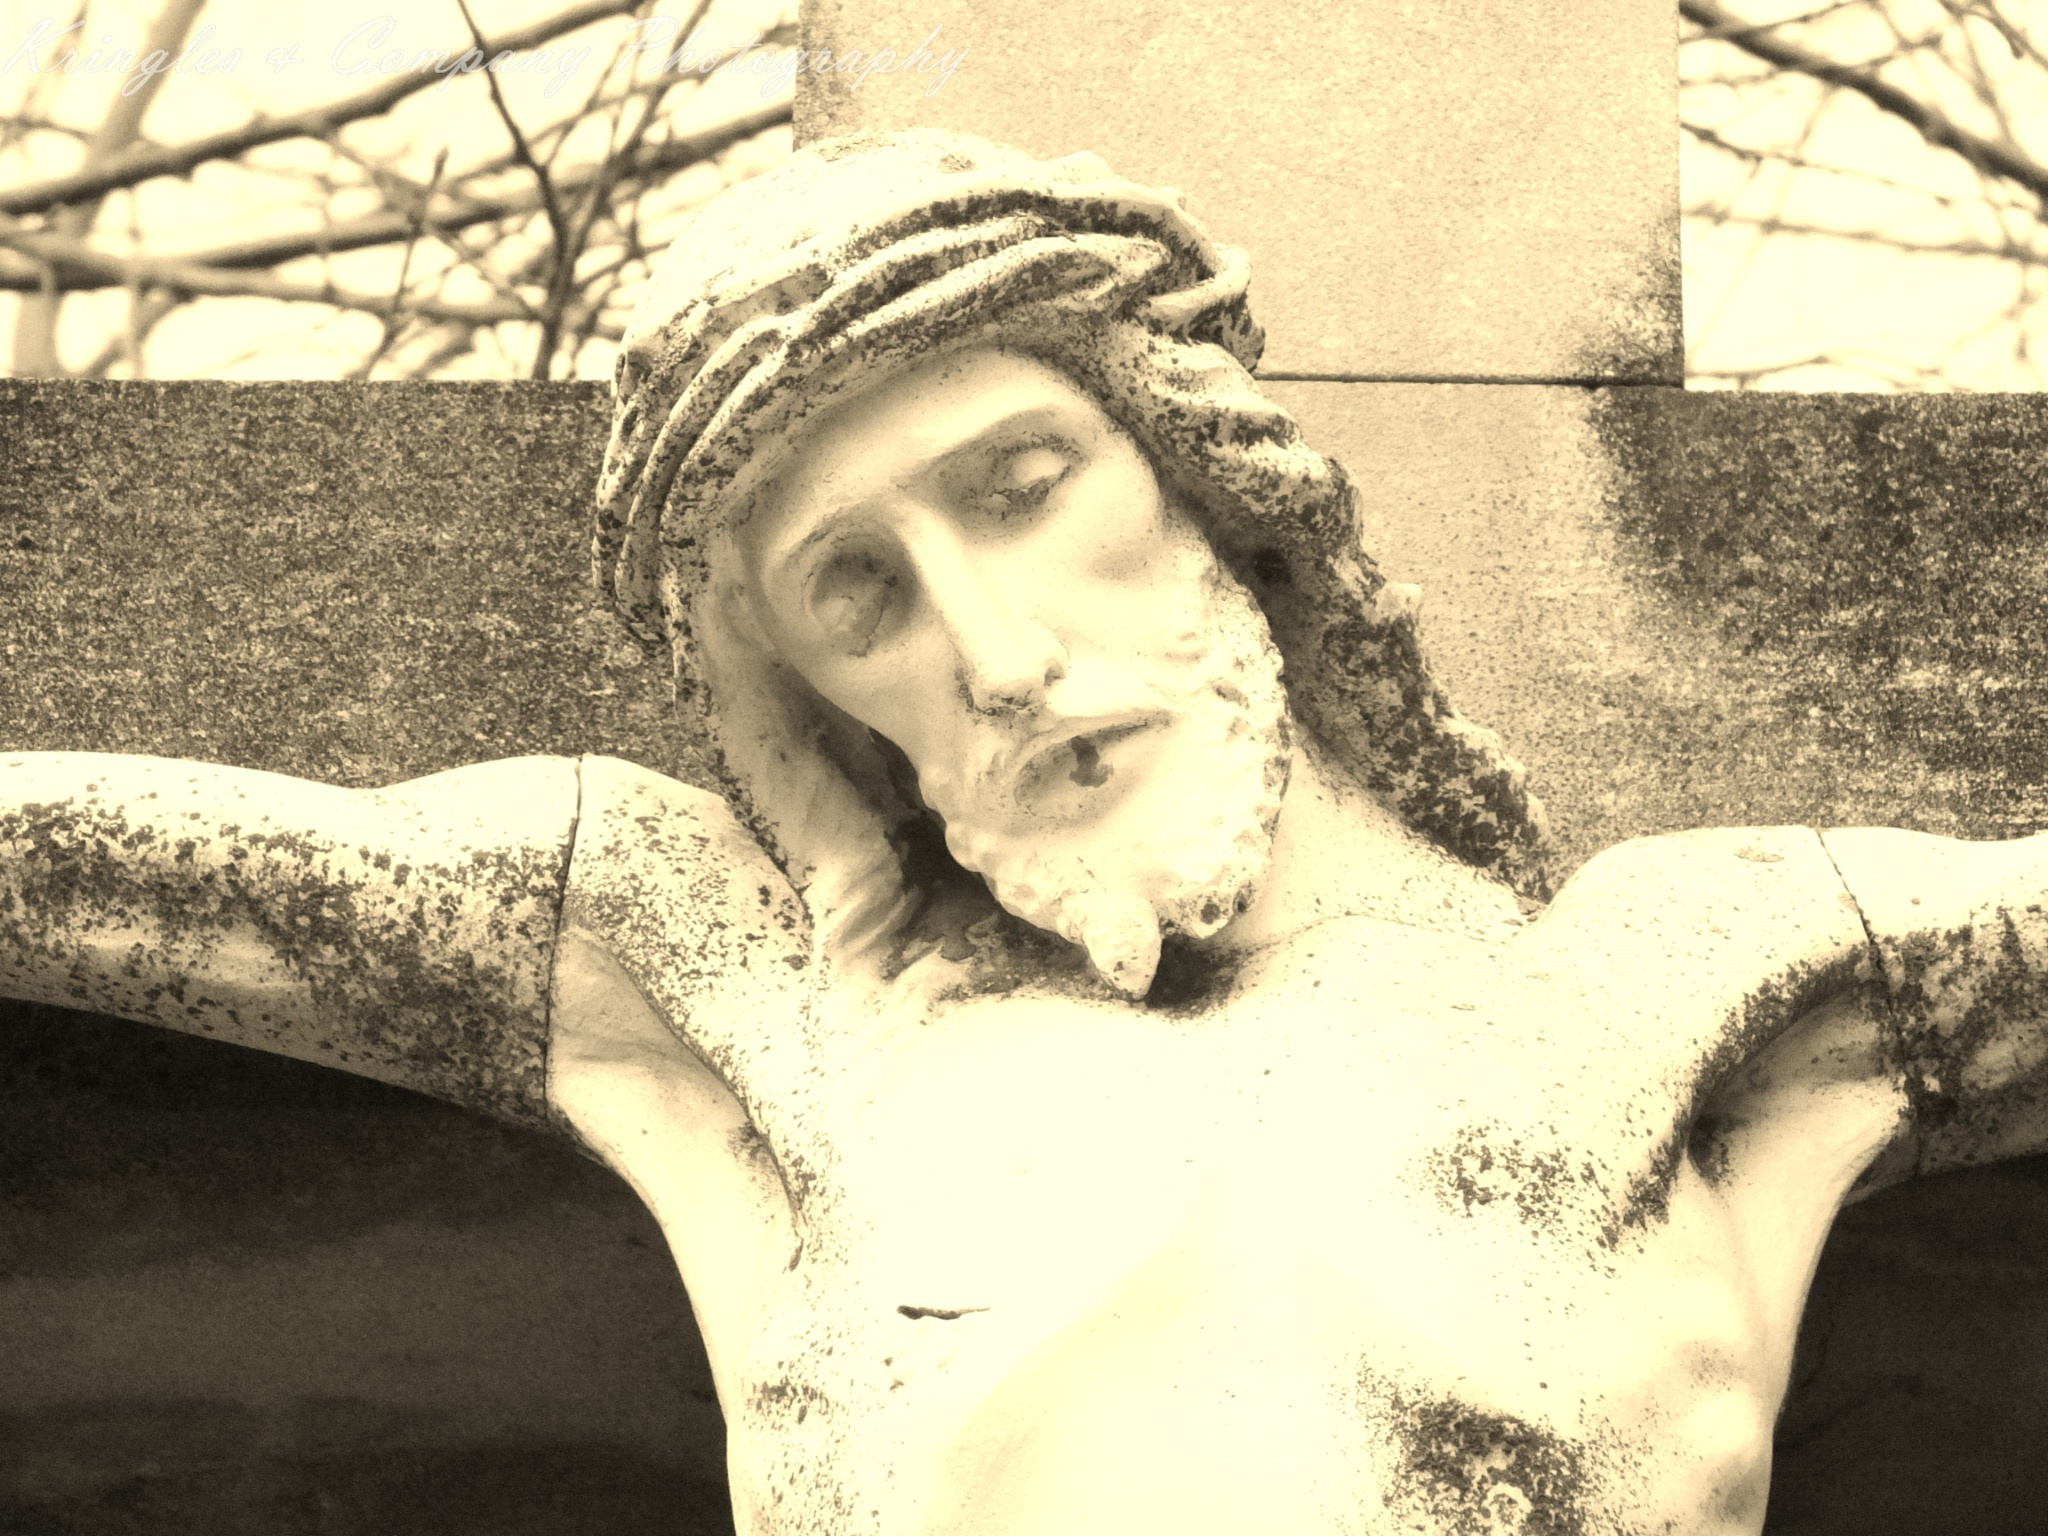 Jesus by don.wormsley